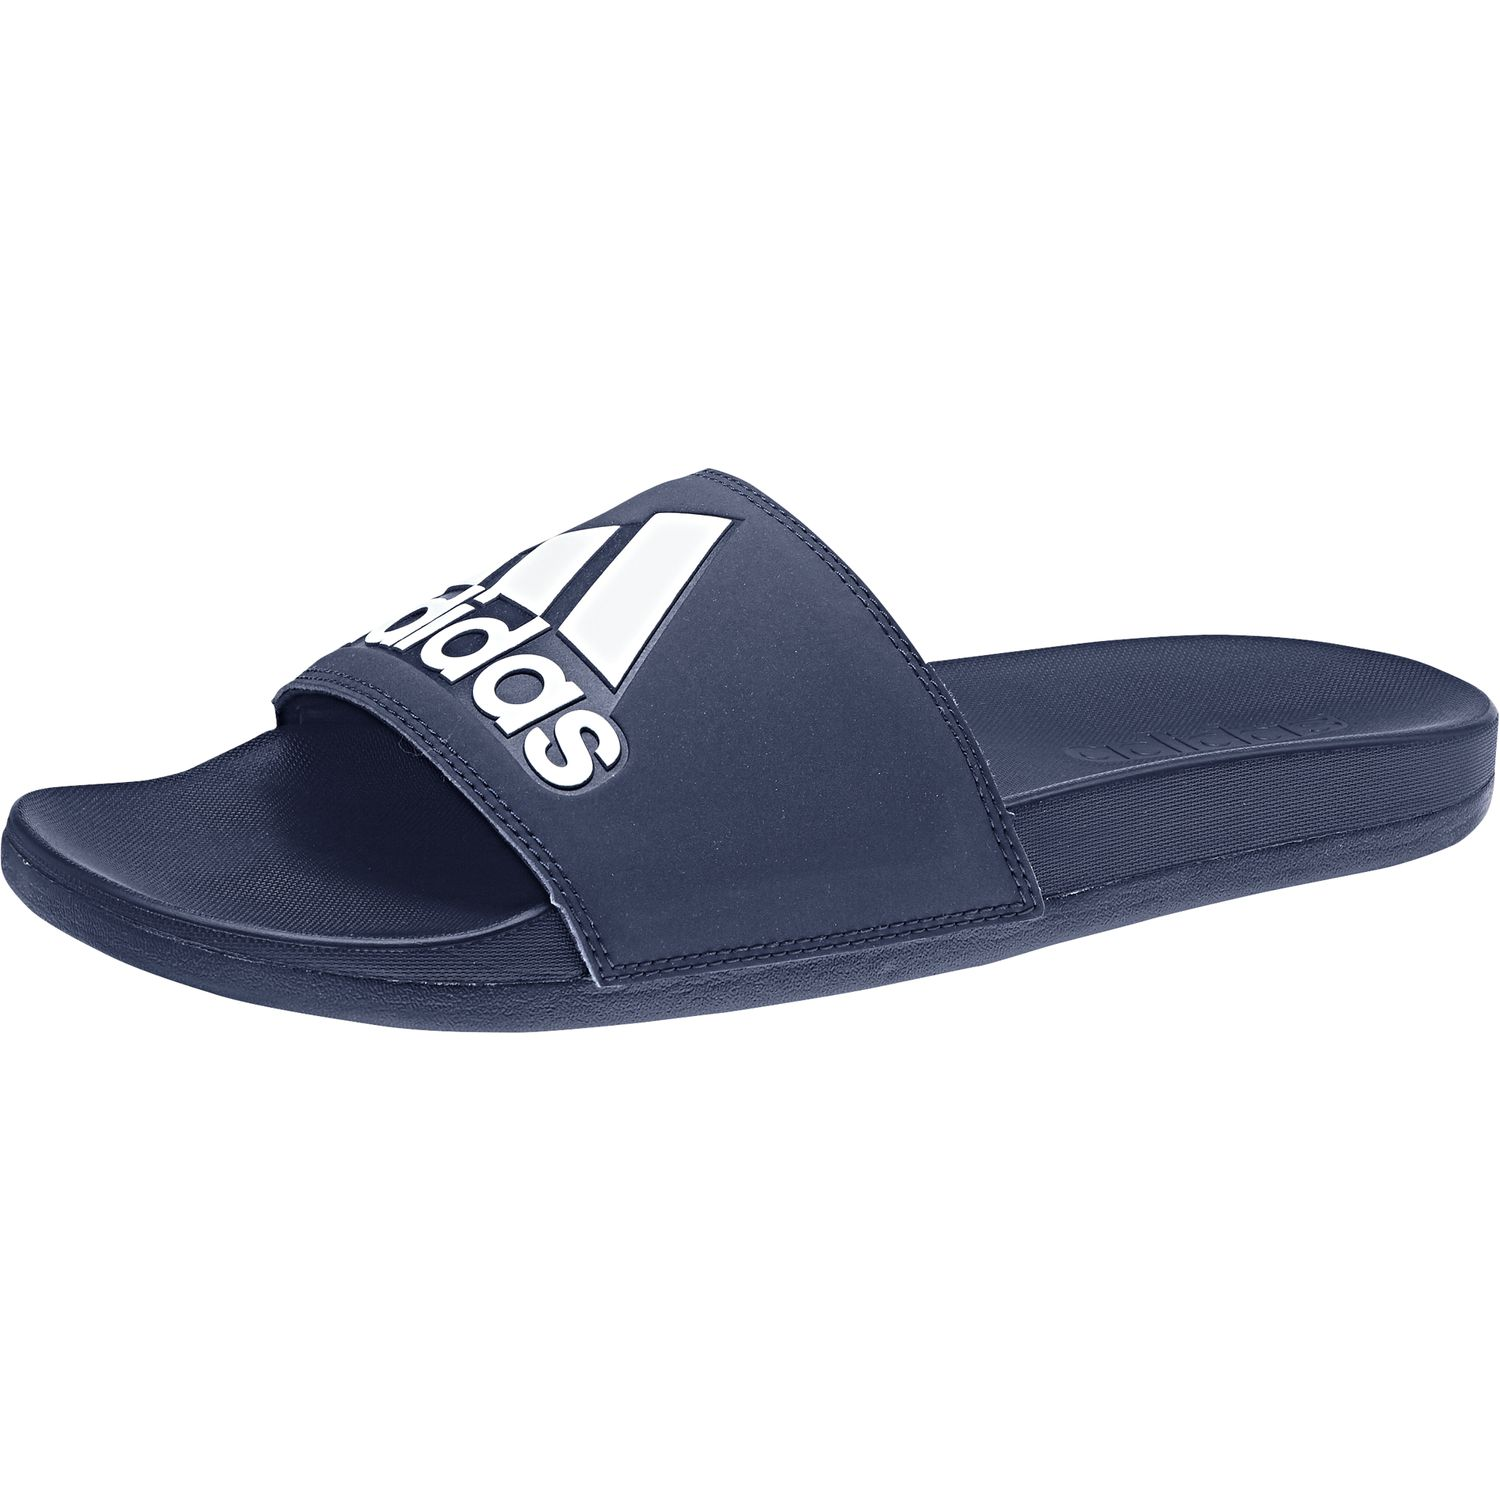 Details about Adidas Adilette Comfort Mules Sandal Slides Cf Slippers  B44870 Navy